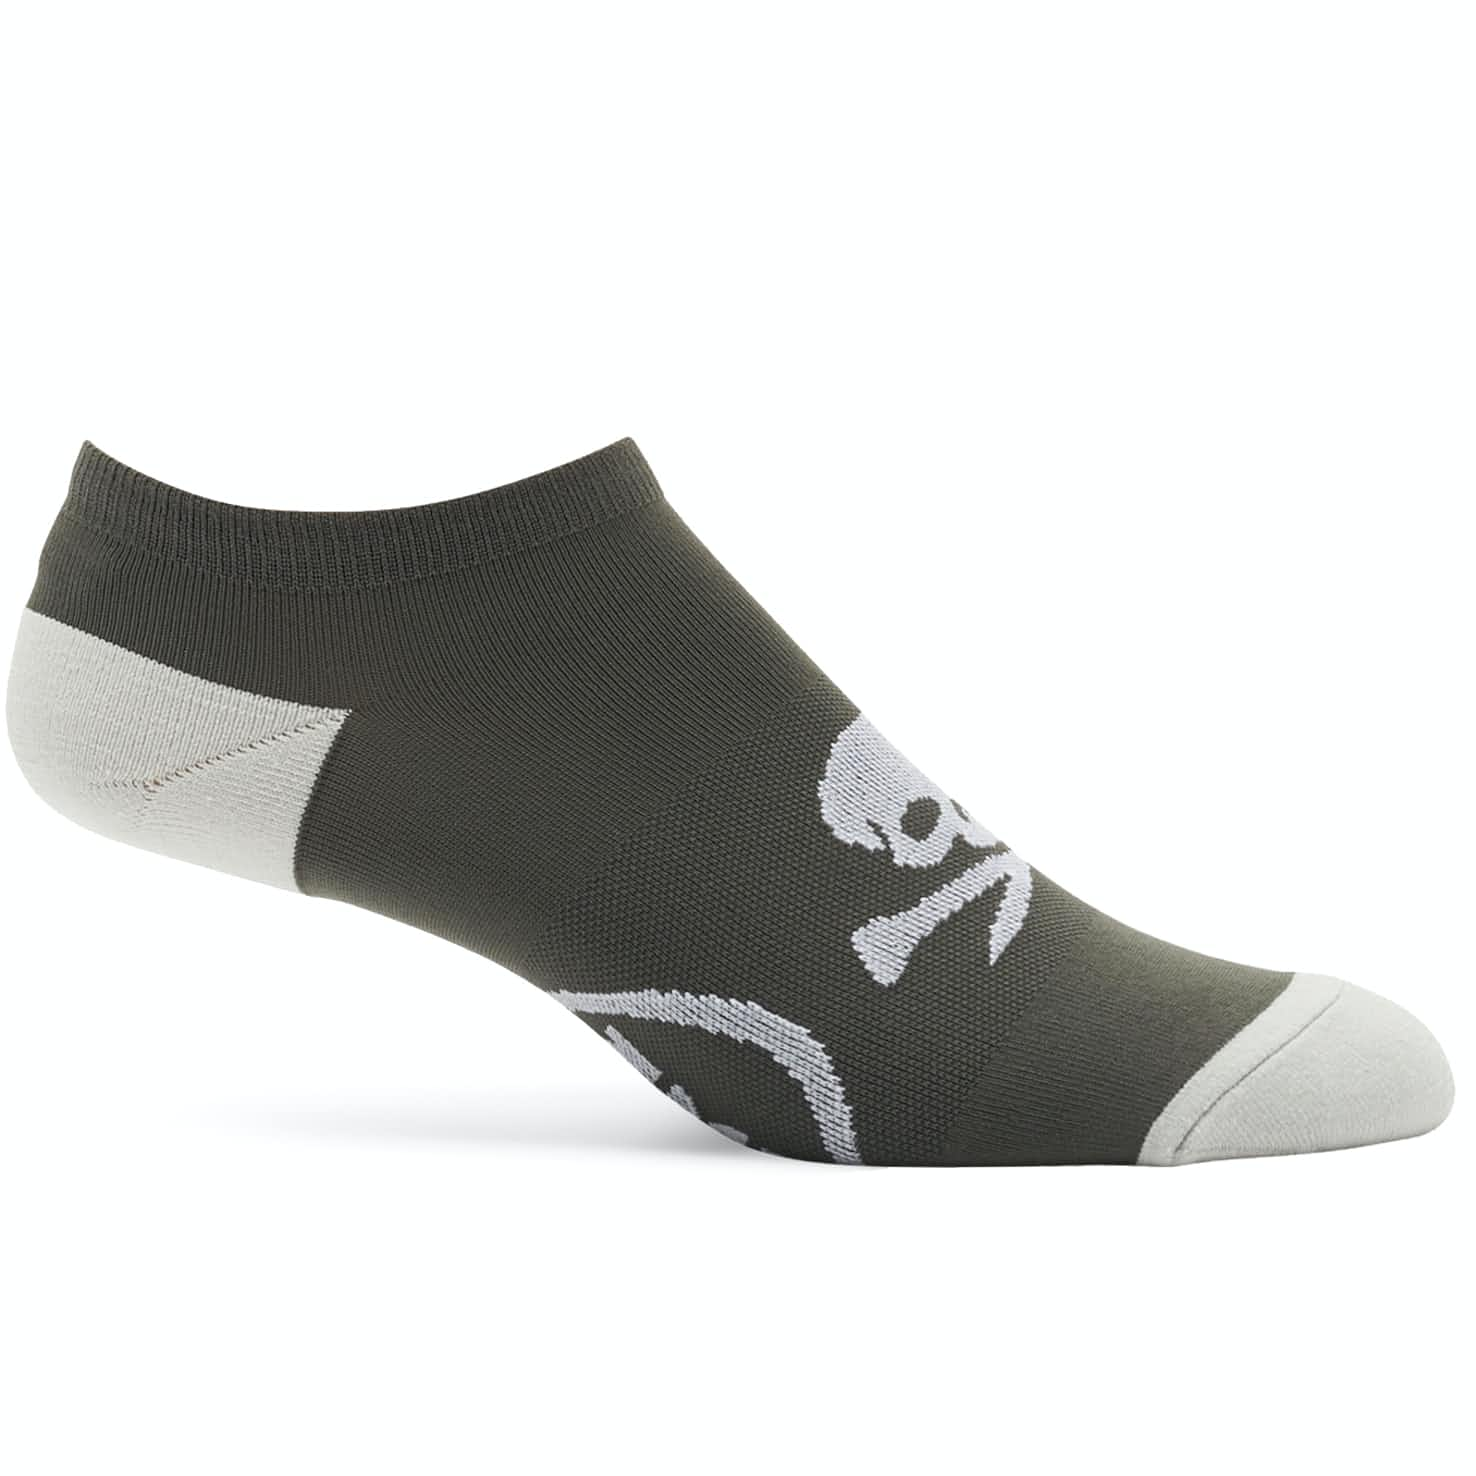 Skull & T's Low Charcoal - SS20